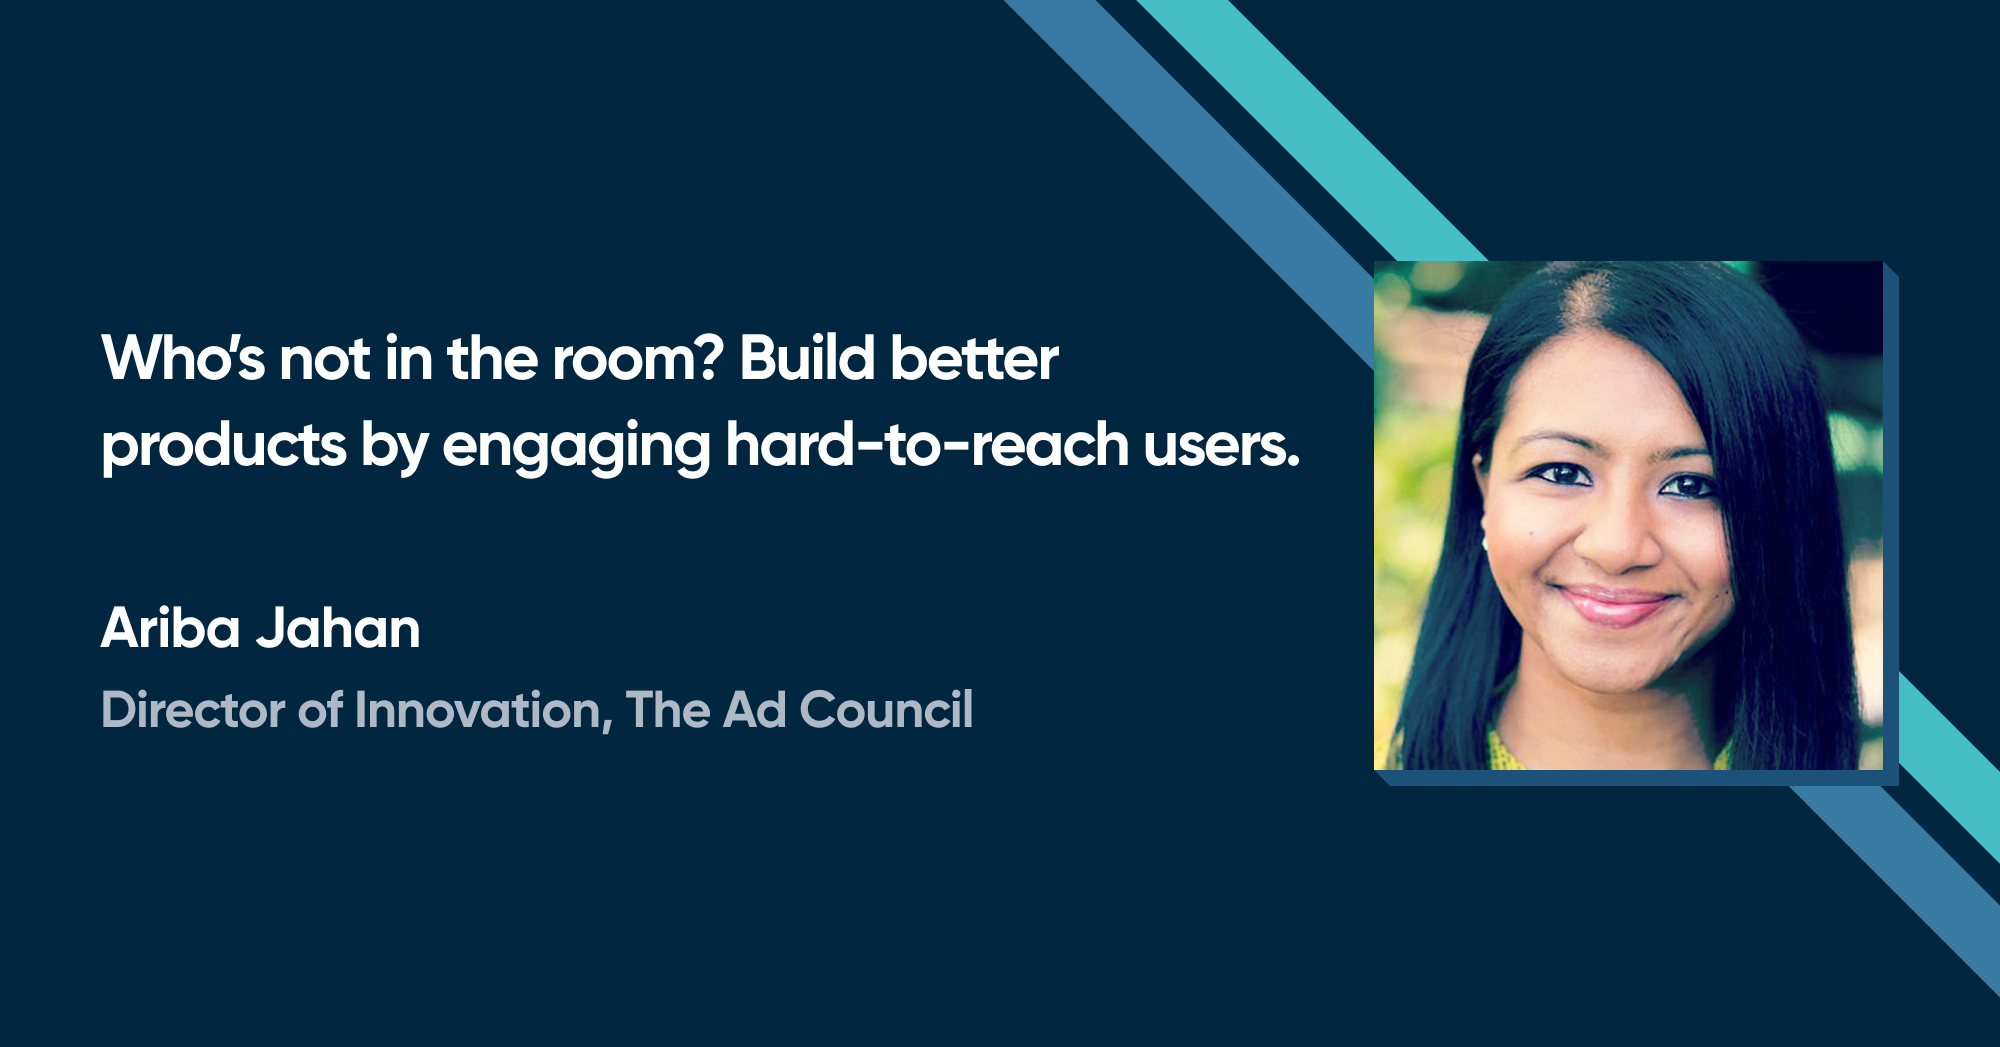 Ariba Jahan - Who's not in the room? Build better products by engaging hard-to-reach users